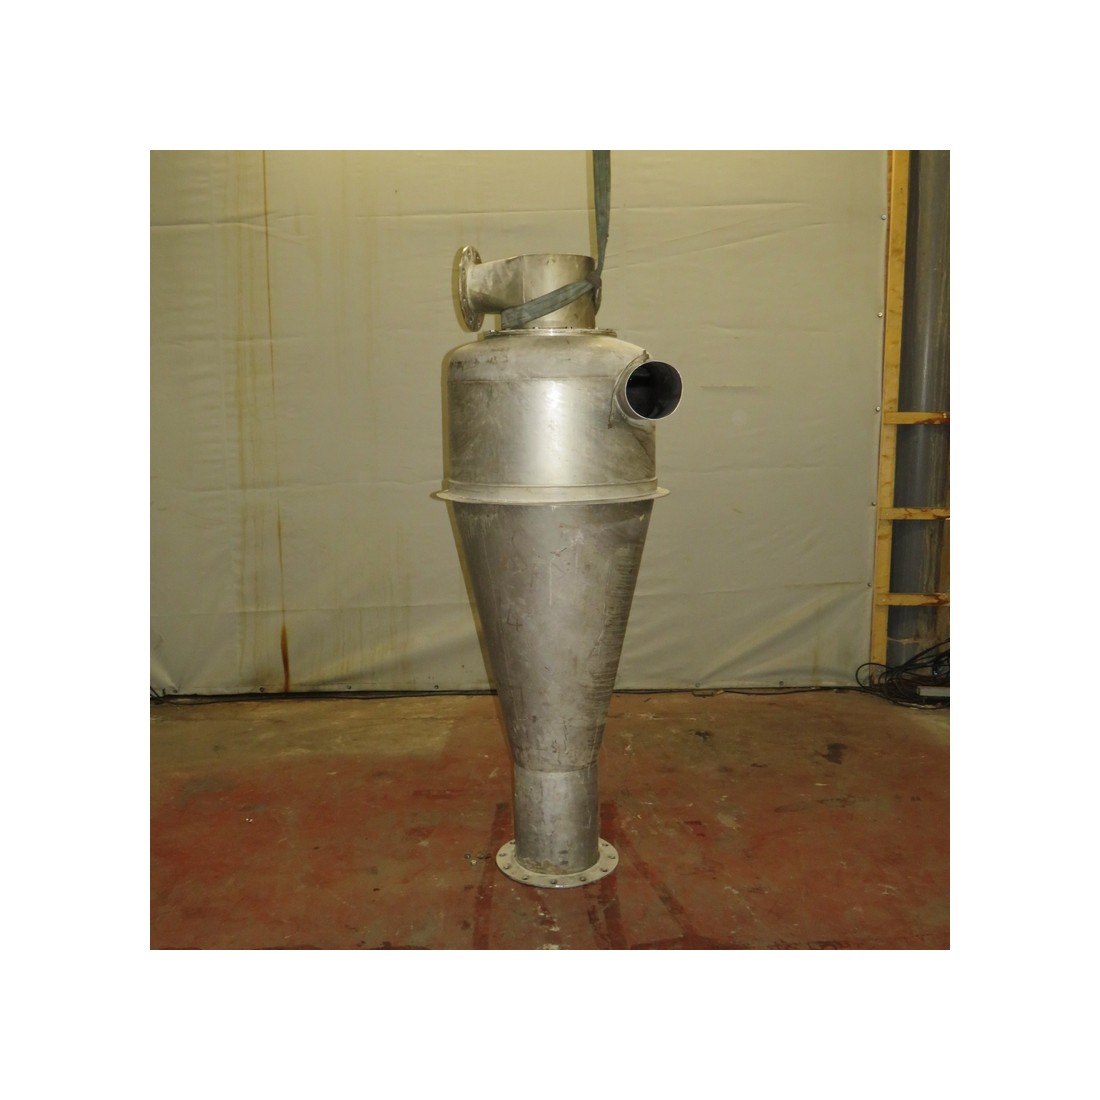 Stainless steel cyclone - R1J1164